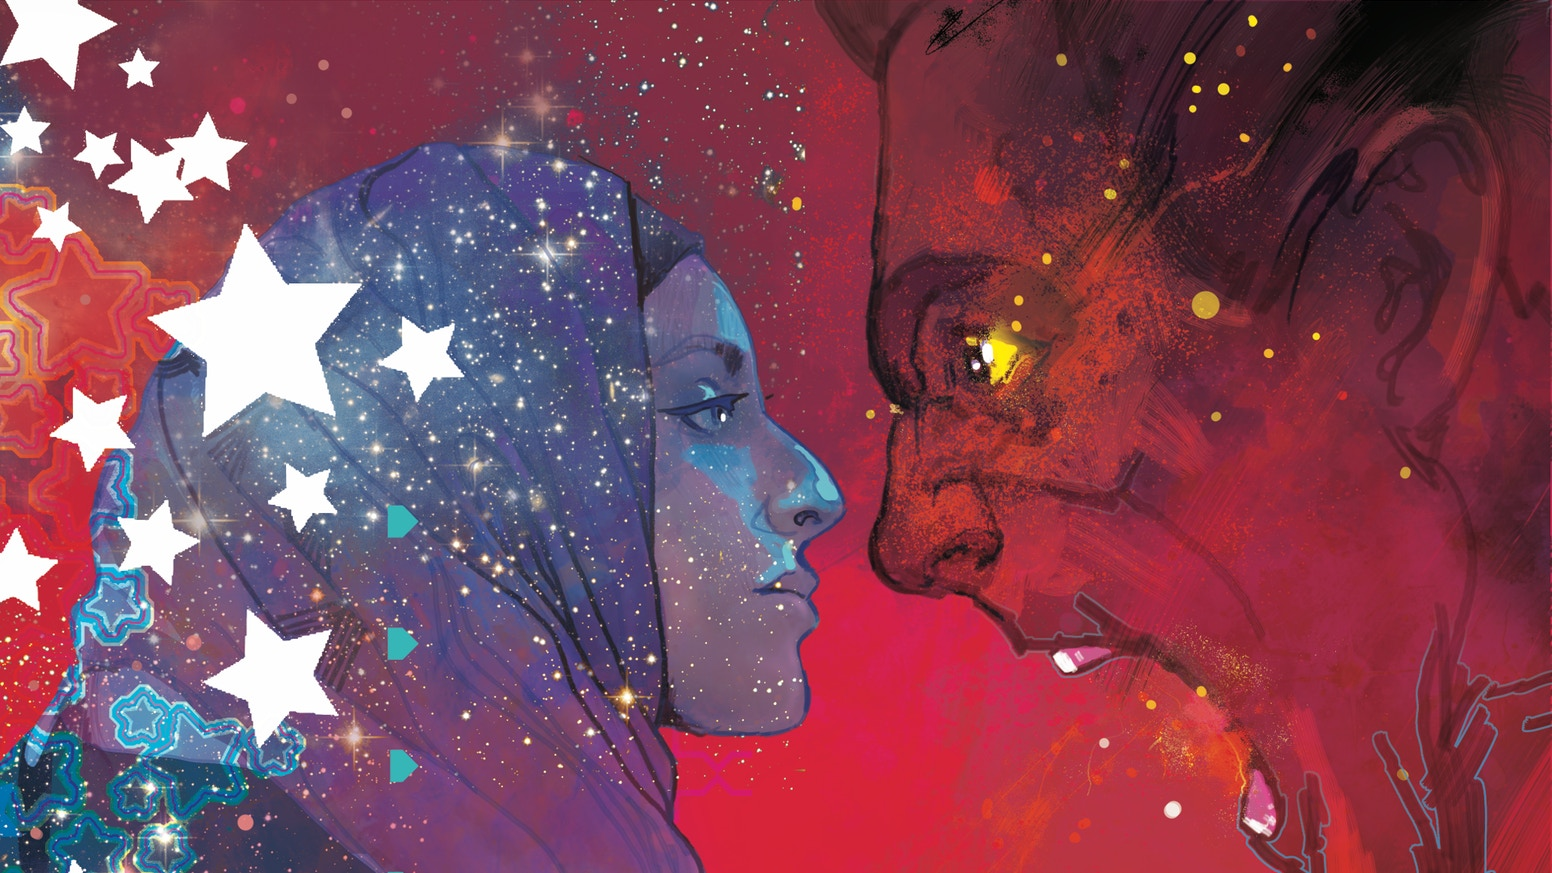 An anthology collection of 40 stories from an all-star roster of comics creators united against hatred, bigotry and racism. Proceeds from post Kickstarter book sales will benefit the charities that fight hate.